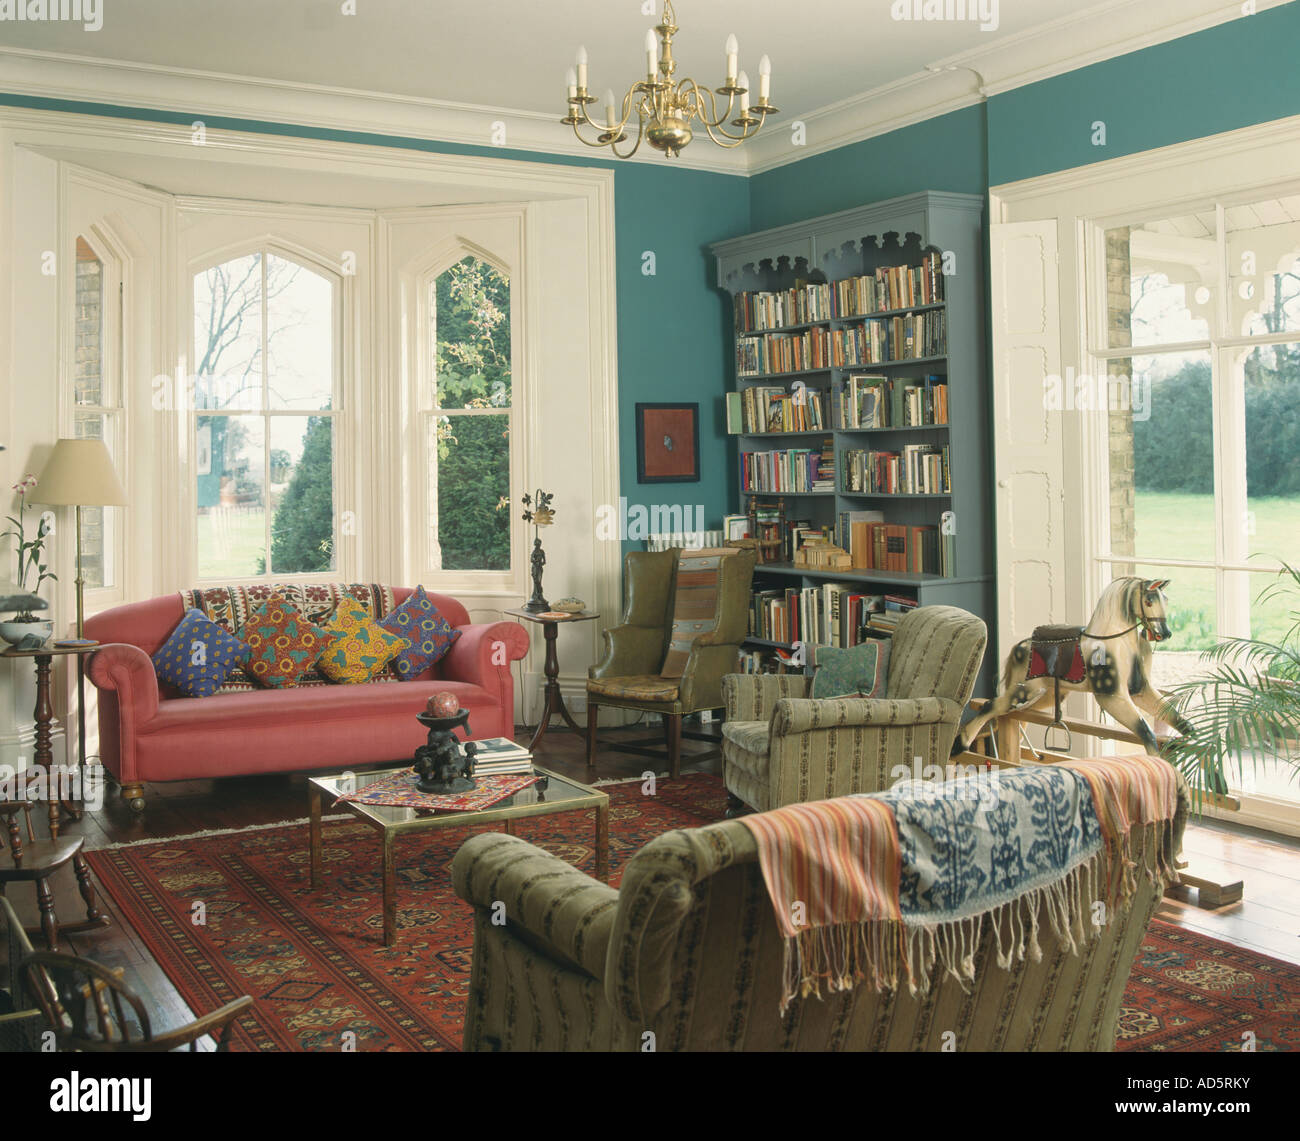 Colourful cushions and throws on sofas in blue livingroom with ...